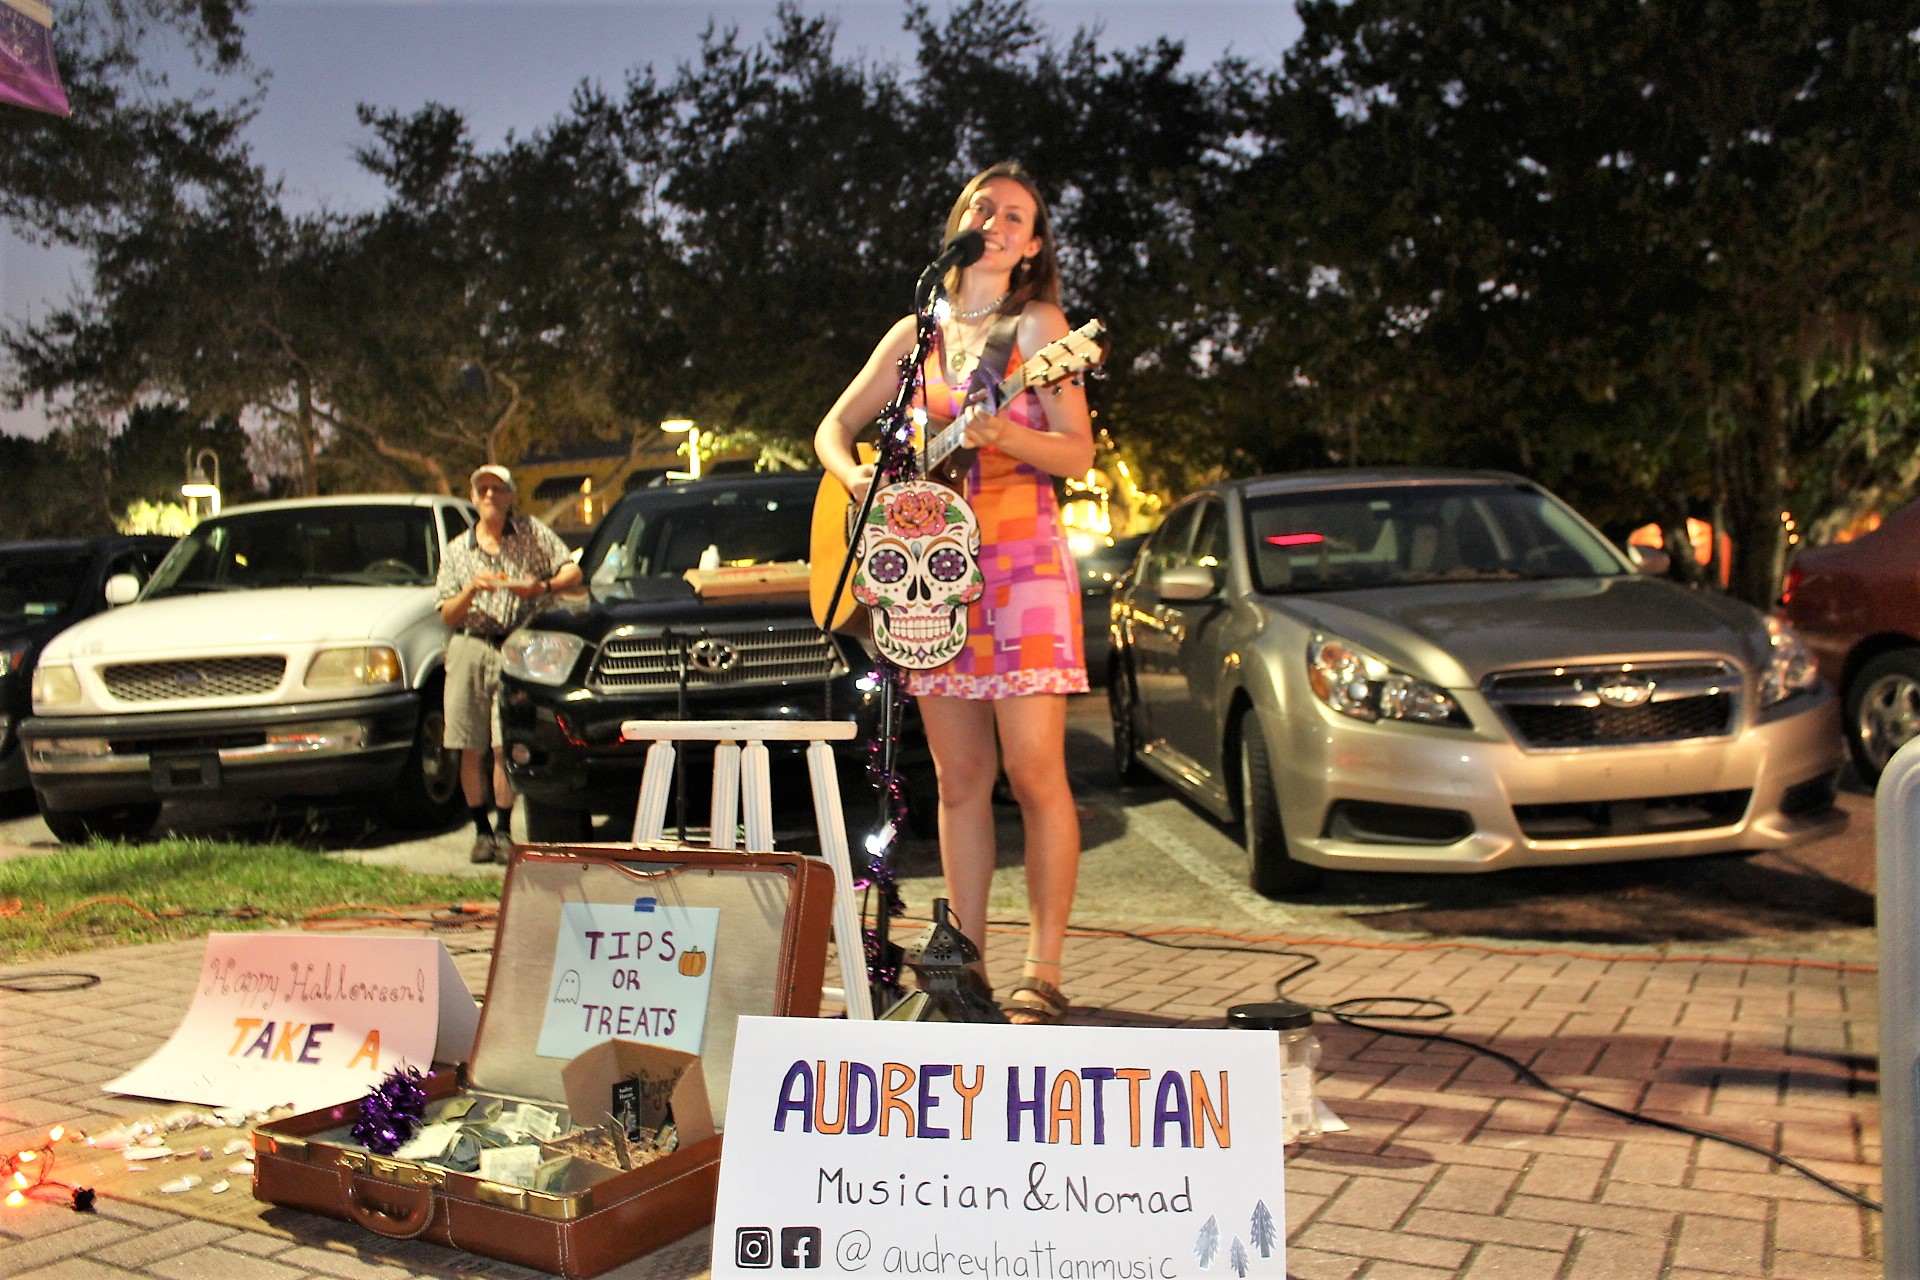 """A young woman stands outside at night playing guitar, in front of a sign that reads """"Audrey Hattan"""""""